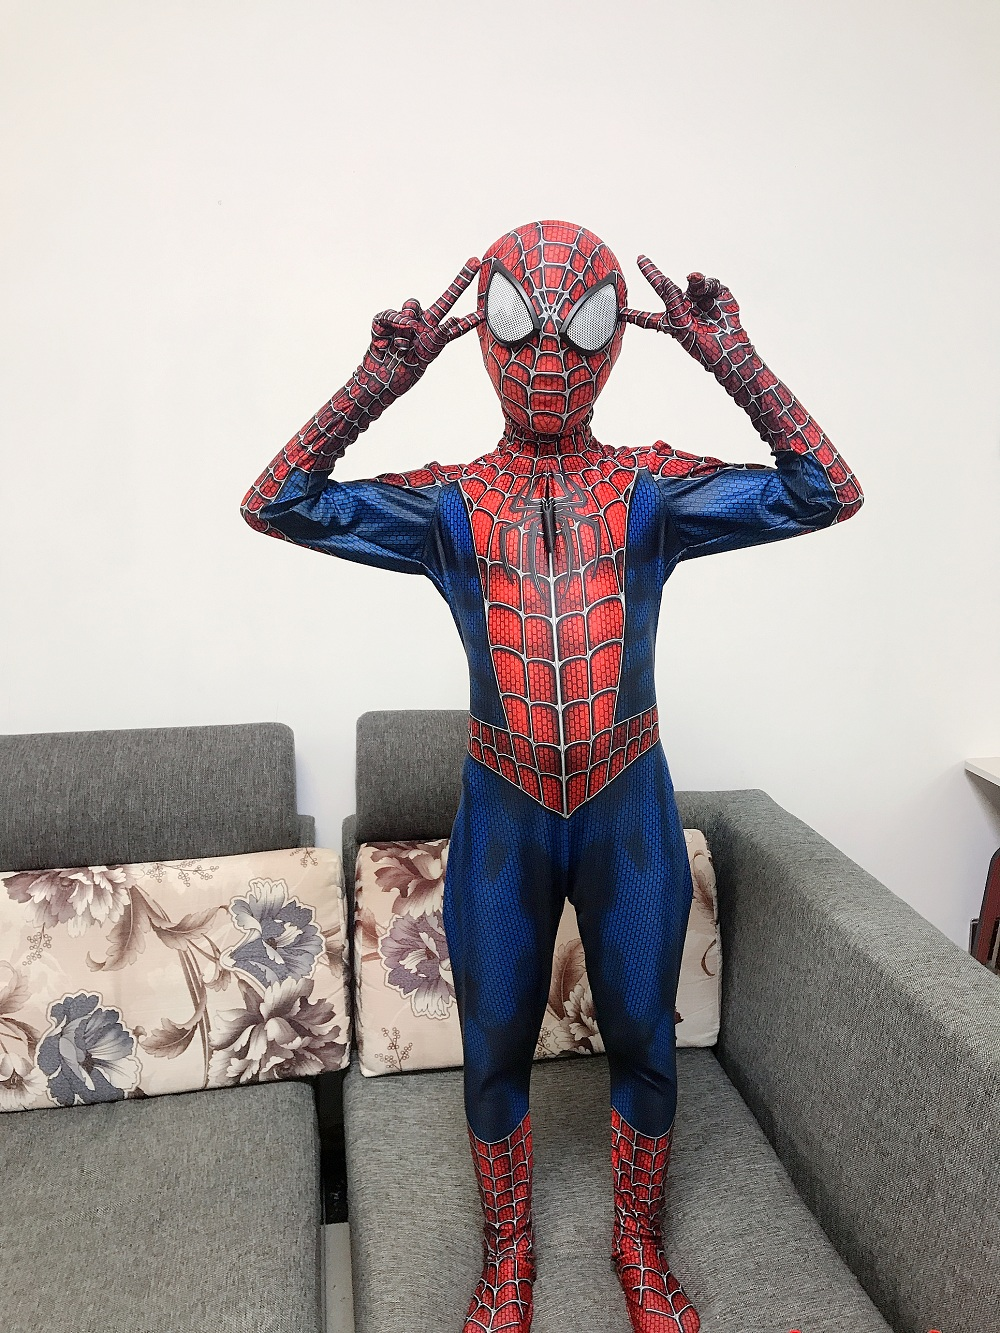 2019 New Spiderman Costume Kids Adult Polyester Fiber (Polyester)Spider-man Costume For Halloween Mascot Cosplay